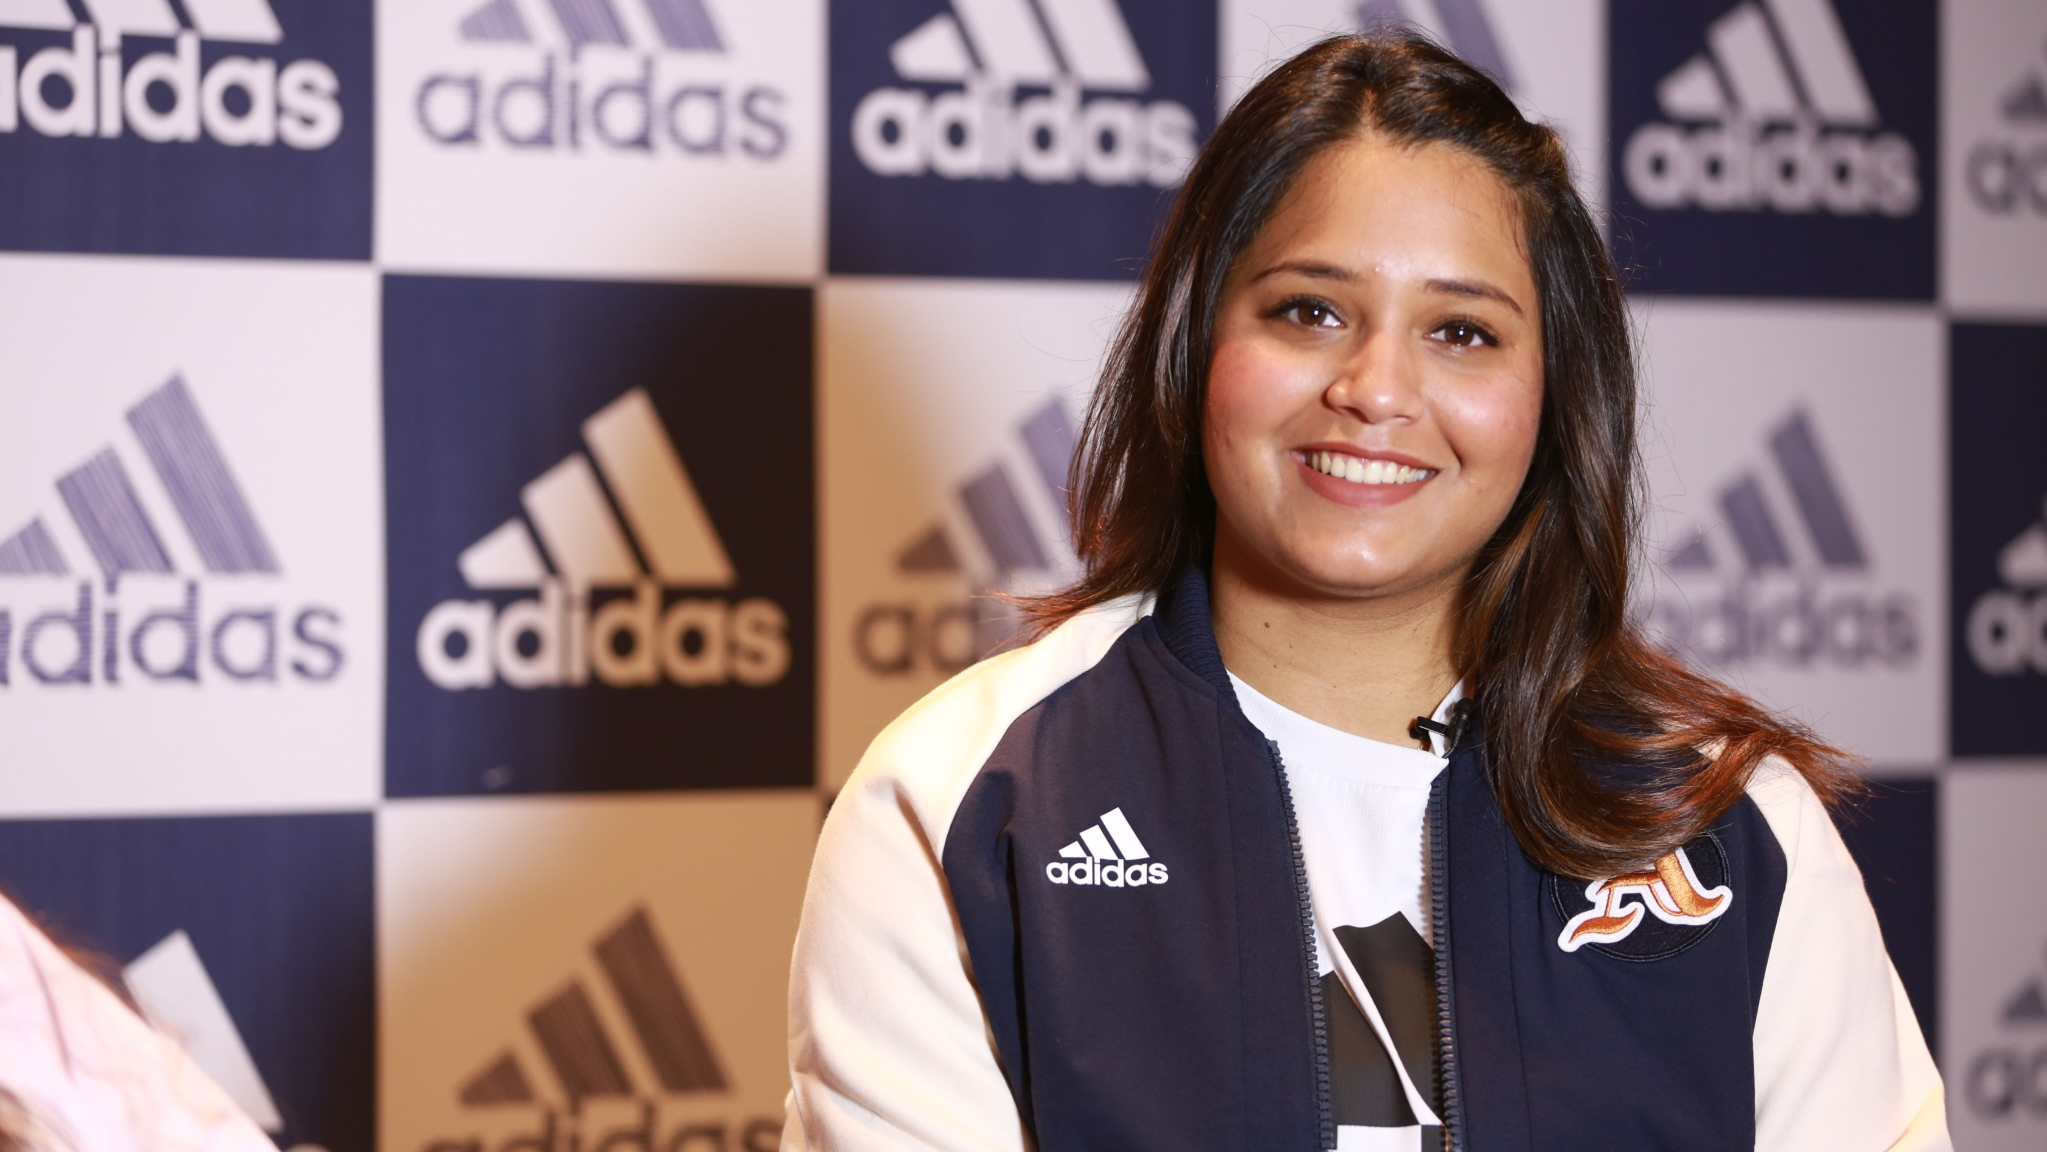 Dipika Pallikal Searches for Motivation & Answers After Medal High